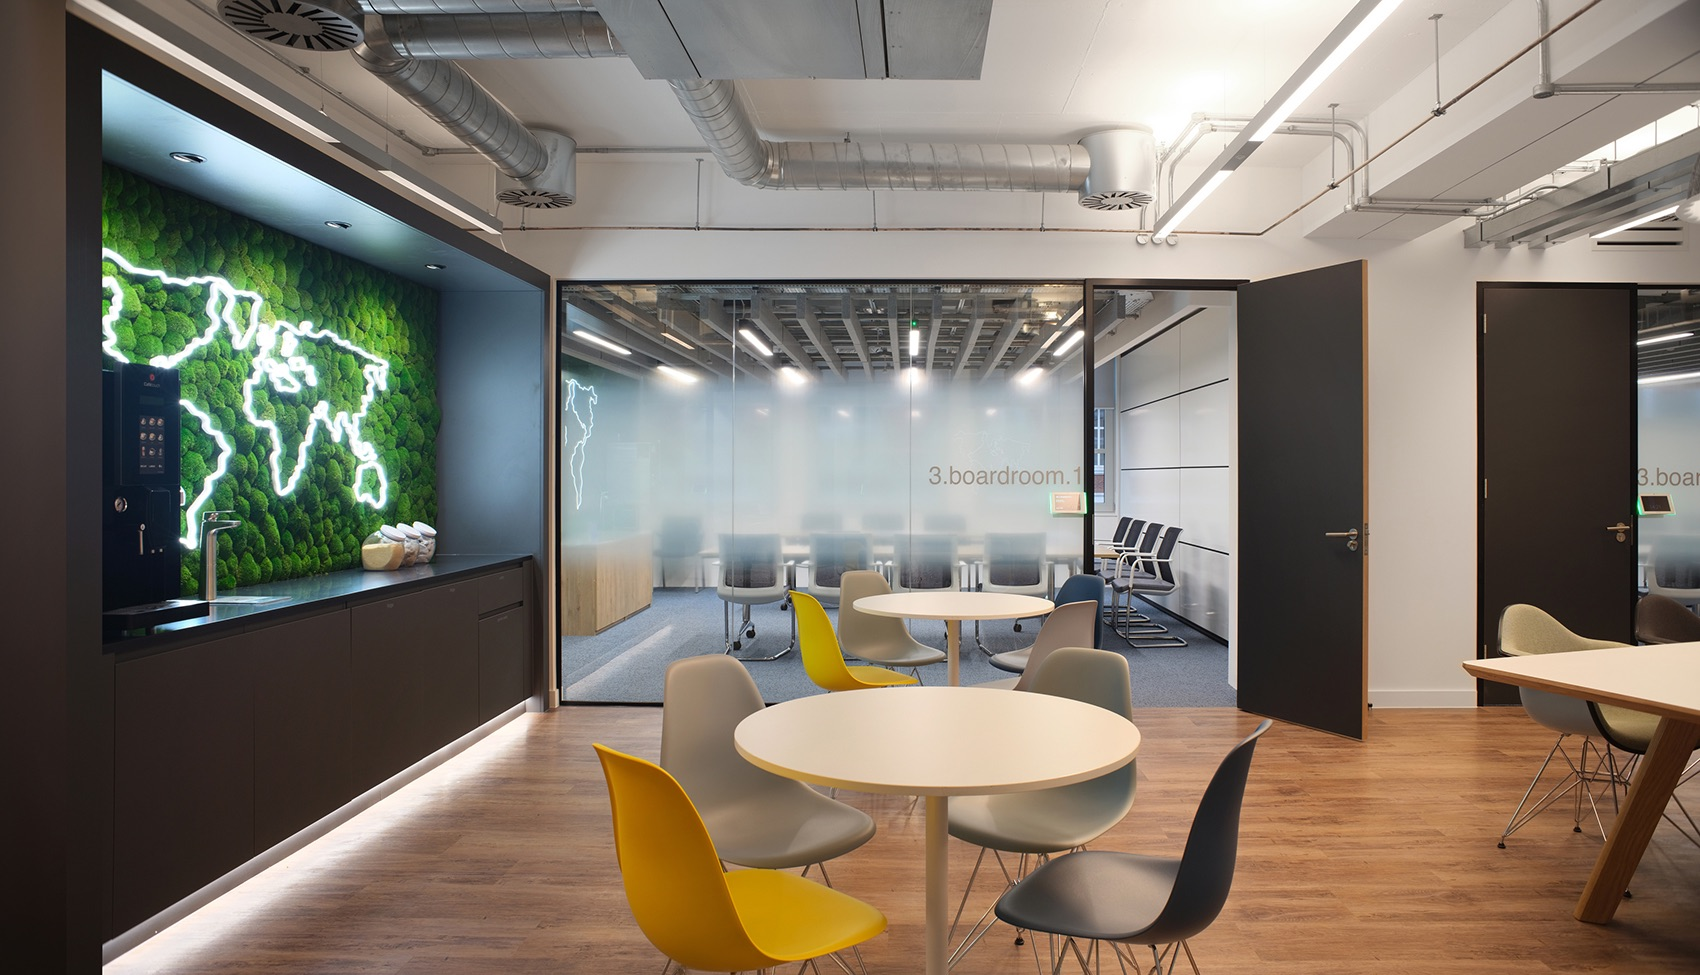 sage-publishing-london-office-8